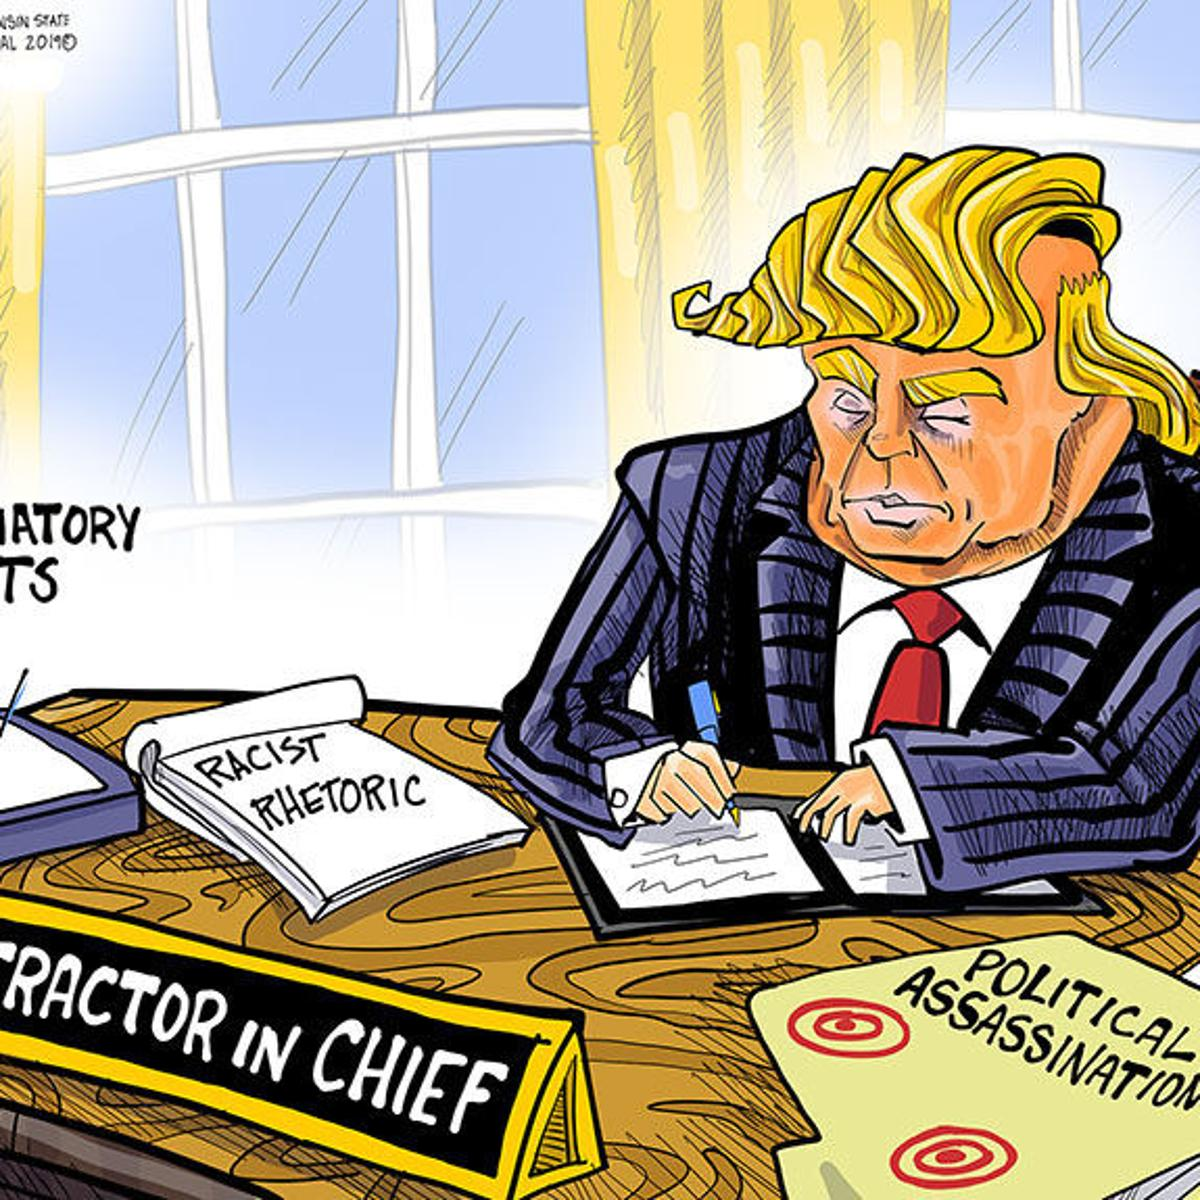 Hands On Wisconsin Donald Trump Is The Distractor In Chief Opinion Lacrossetribune Com